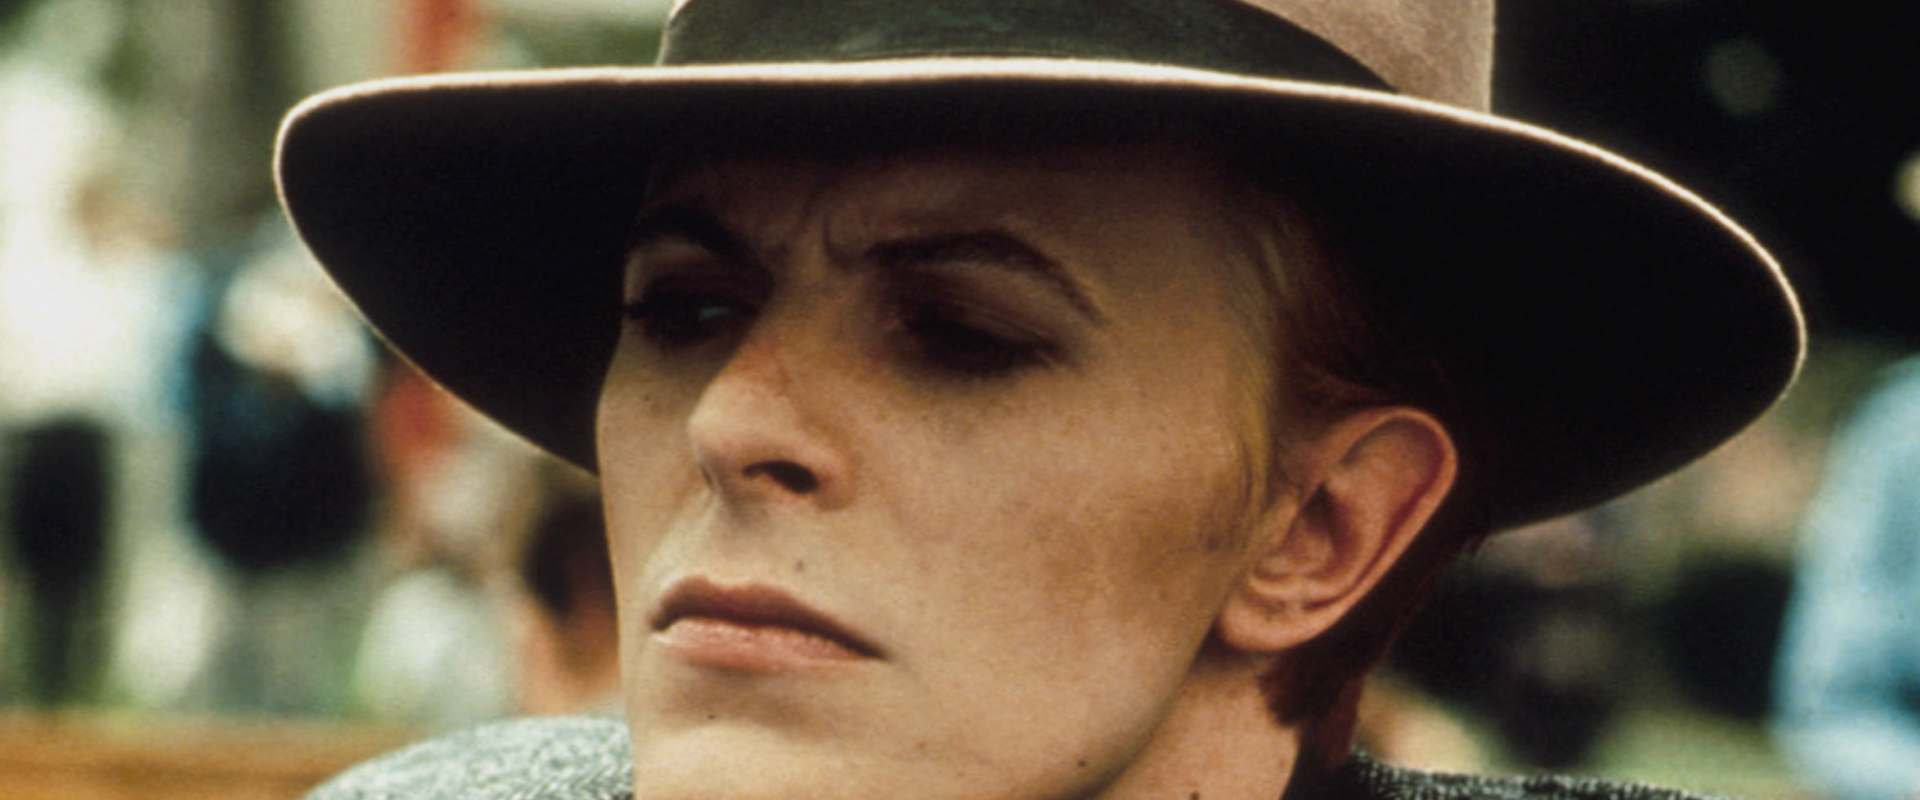 The Man Who Fell to Earth background 1